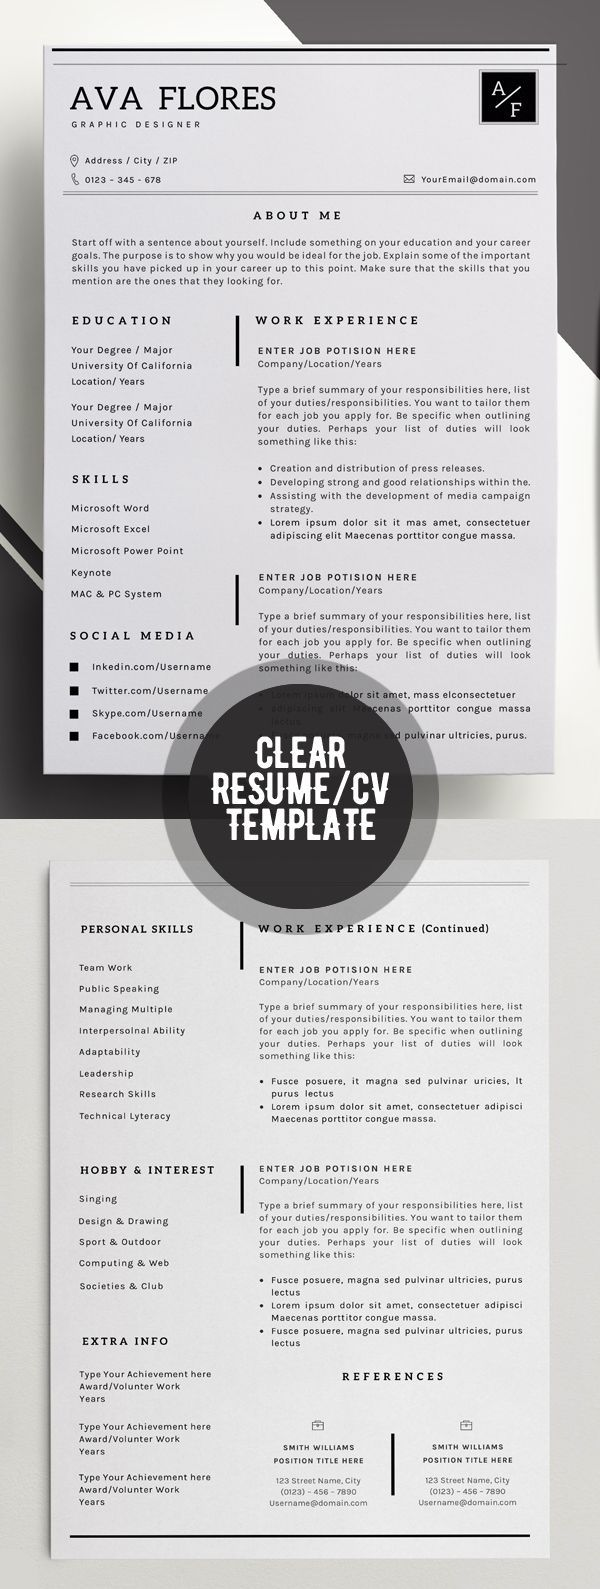 Buy Resume Templates Mesmerizing Professional Resume Template  Cover Letter For Ms Word  Modern